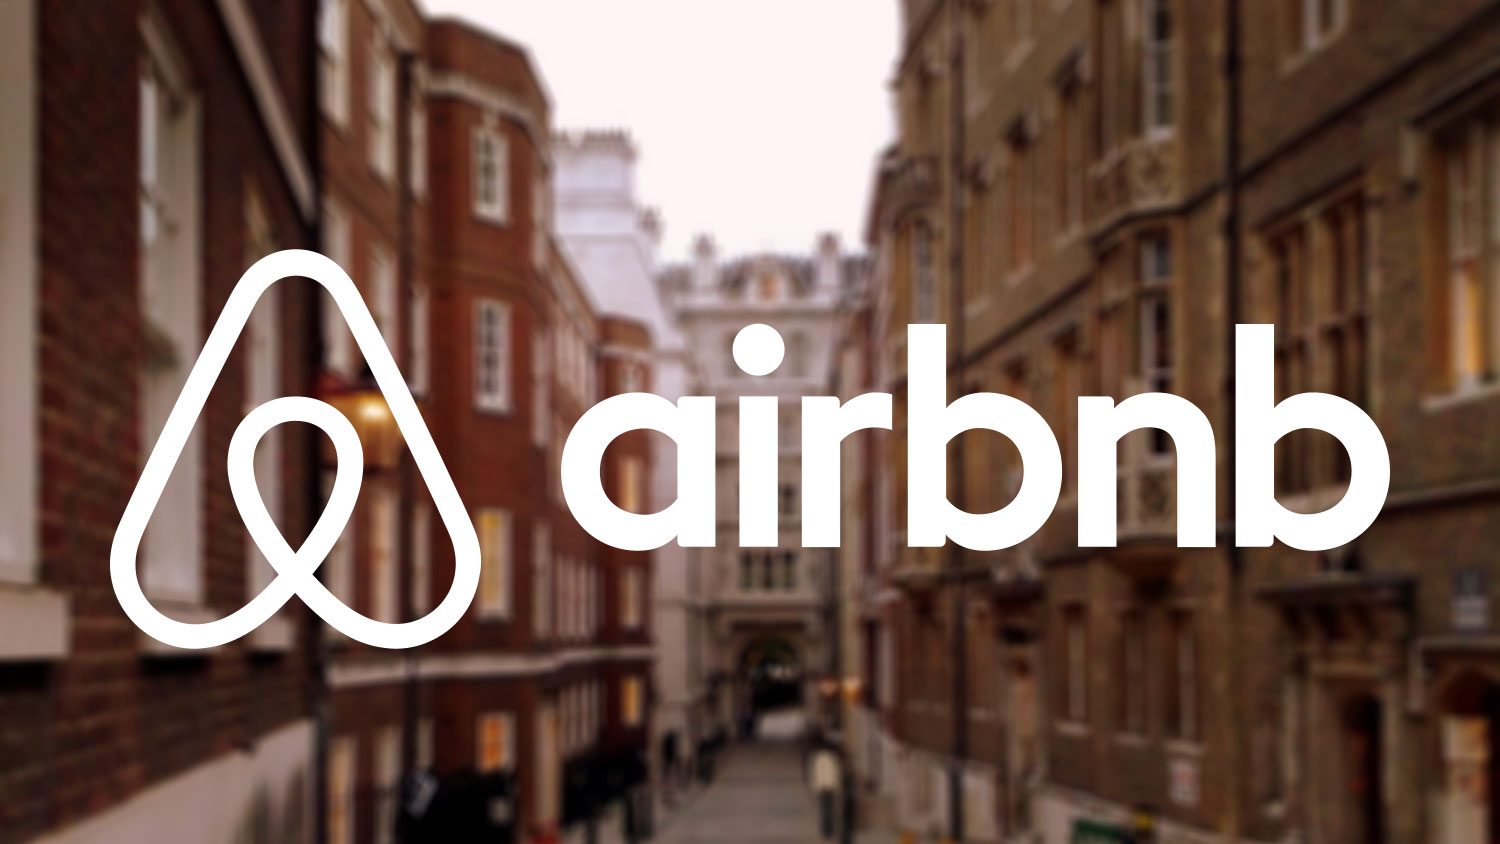 Short term rentals changed by Airbnb